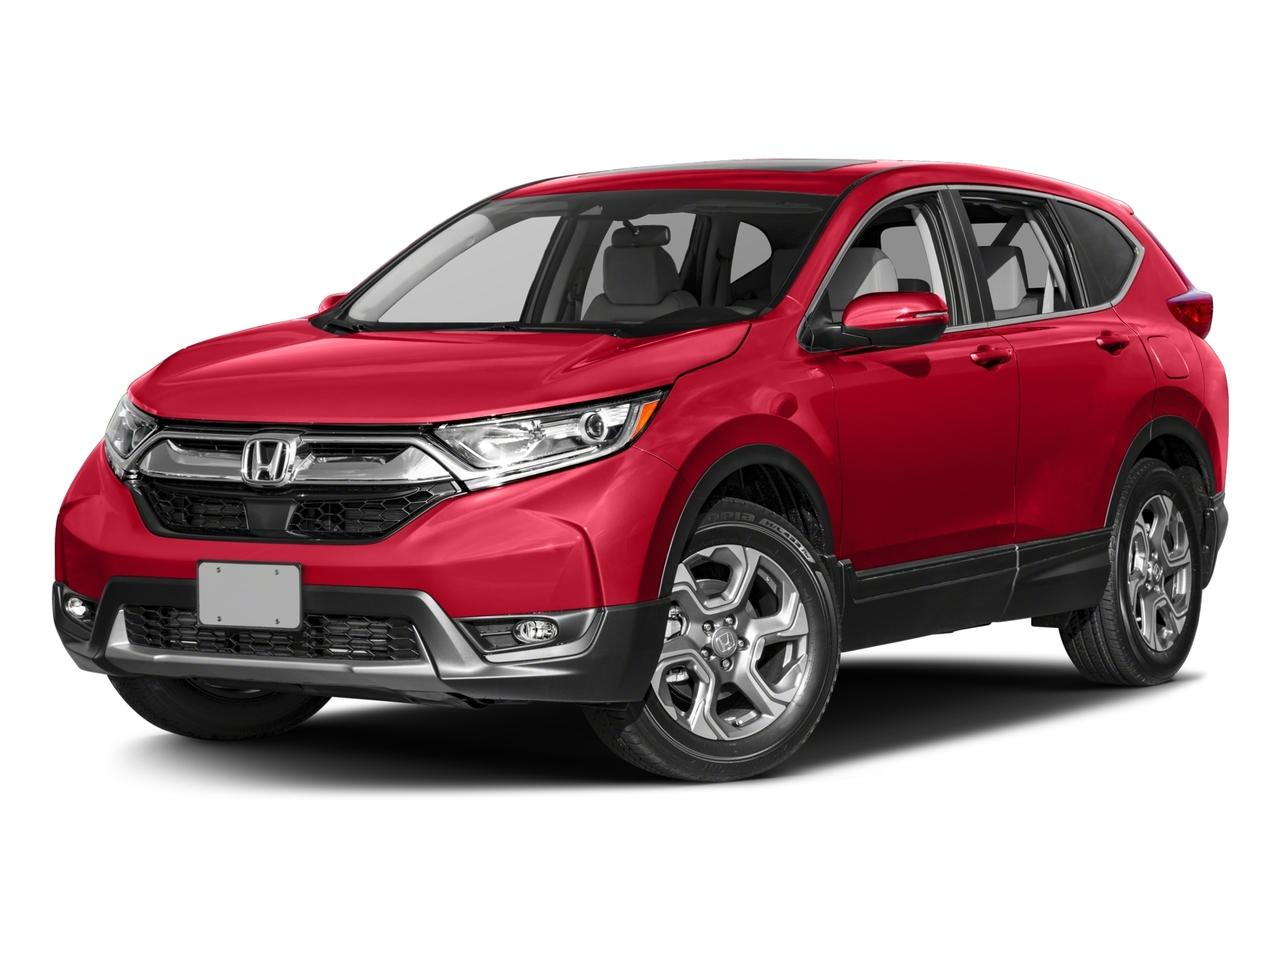 2017 Honda CR-V Vehicle Photo in Jenkintown, PA 19046